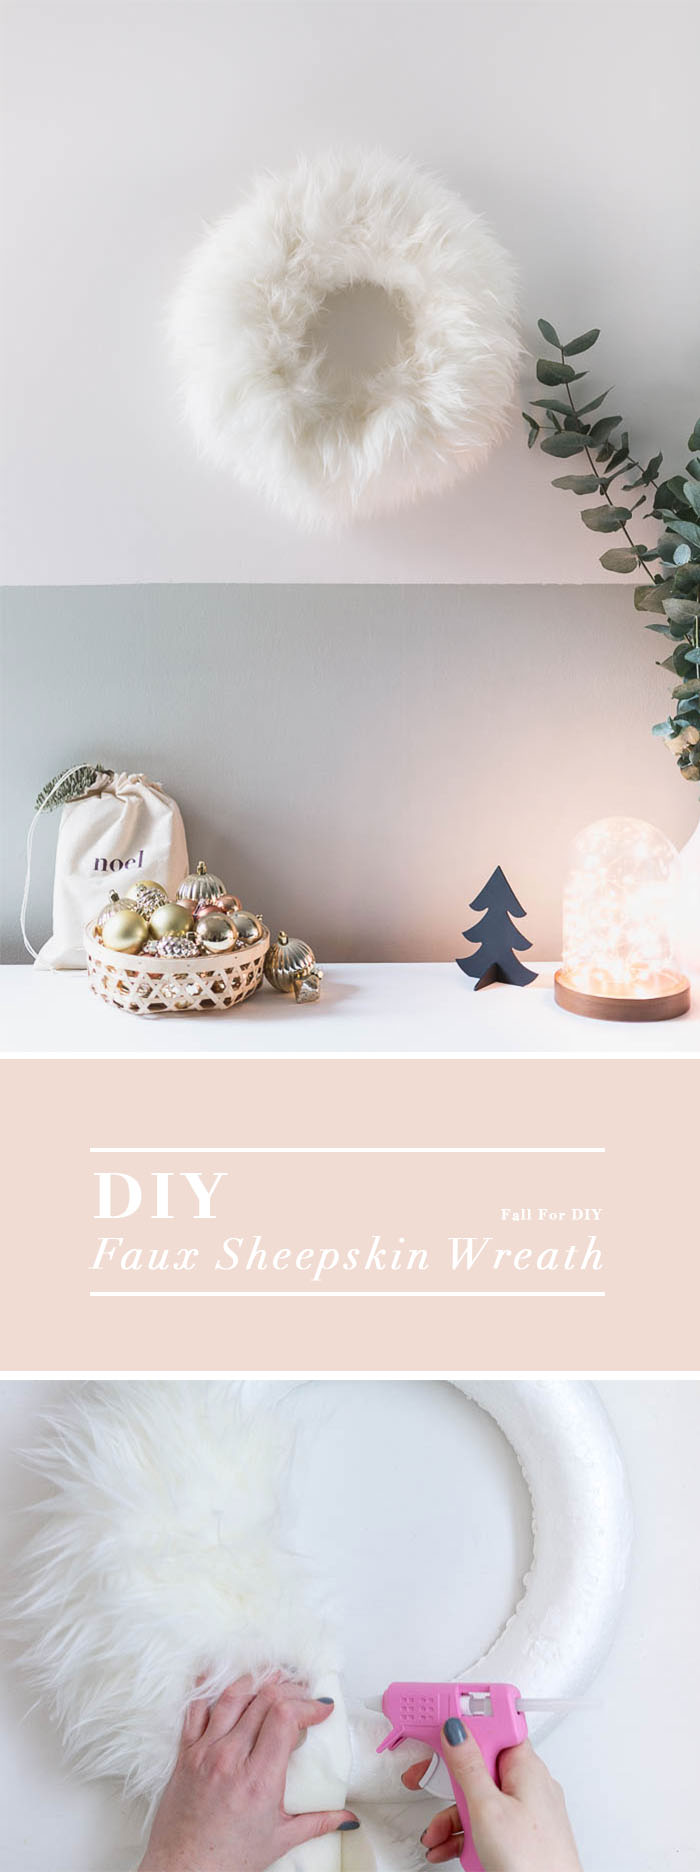 DIY Faux Sheepskin Christmas Wreath | @fallfordiy